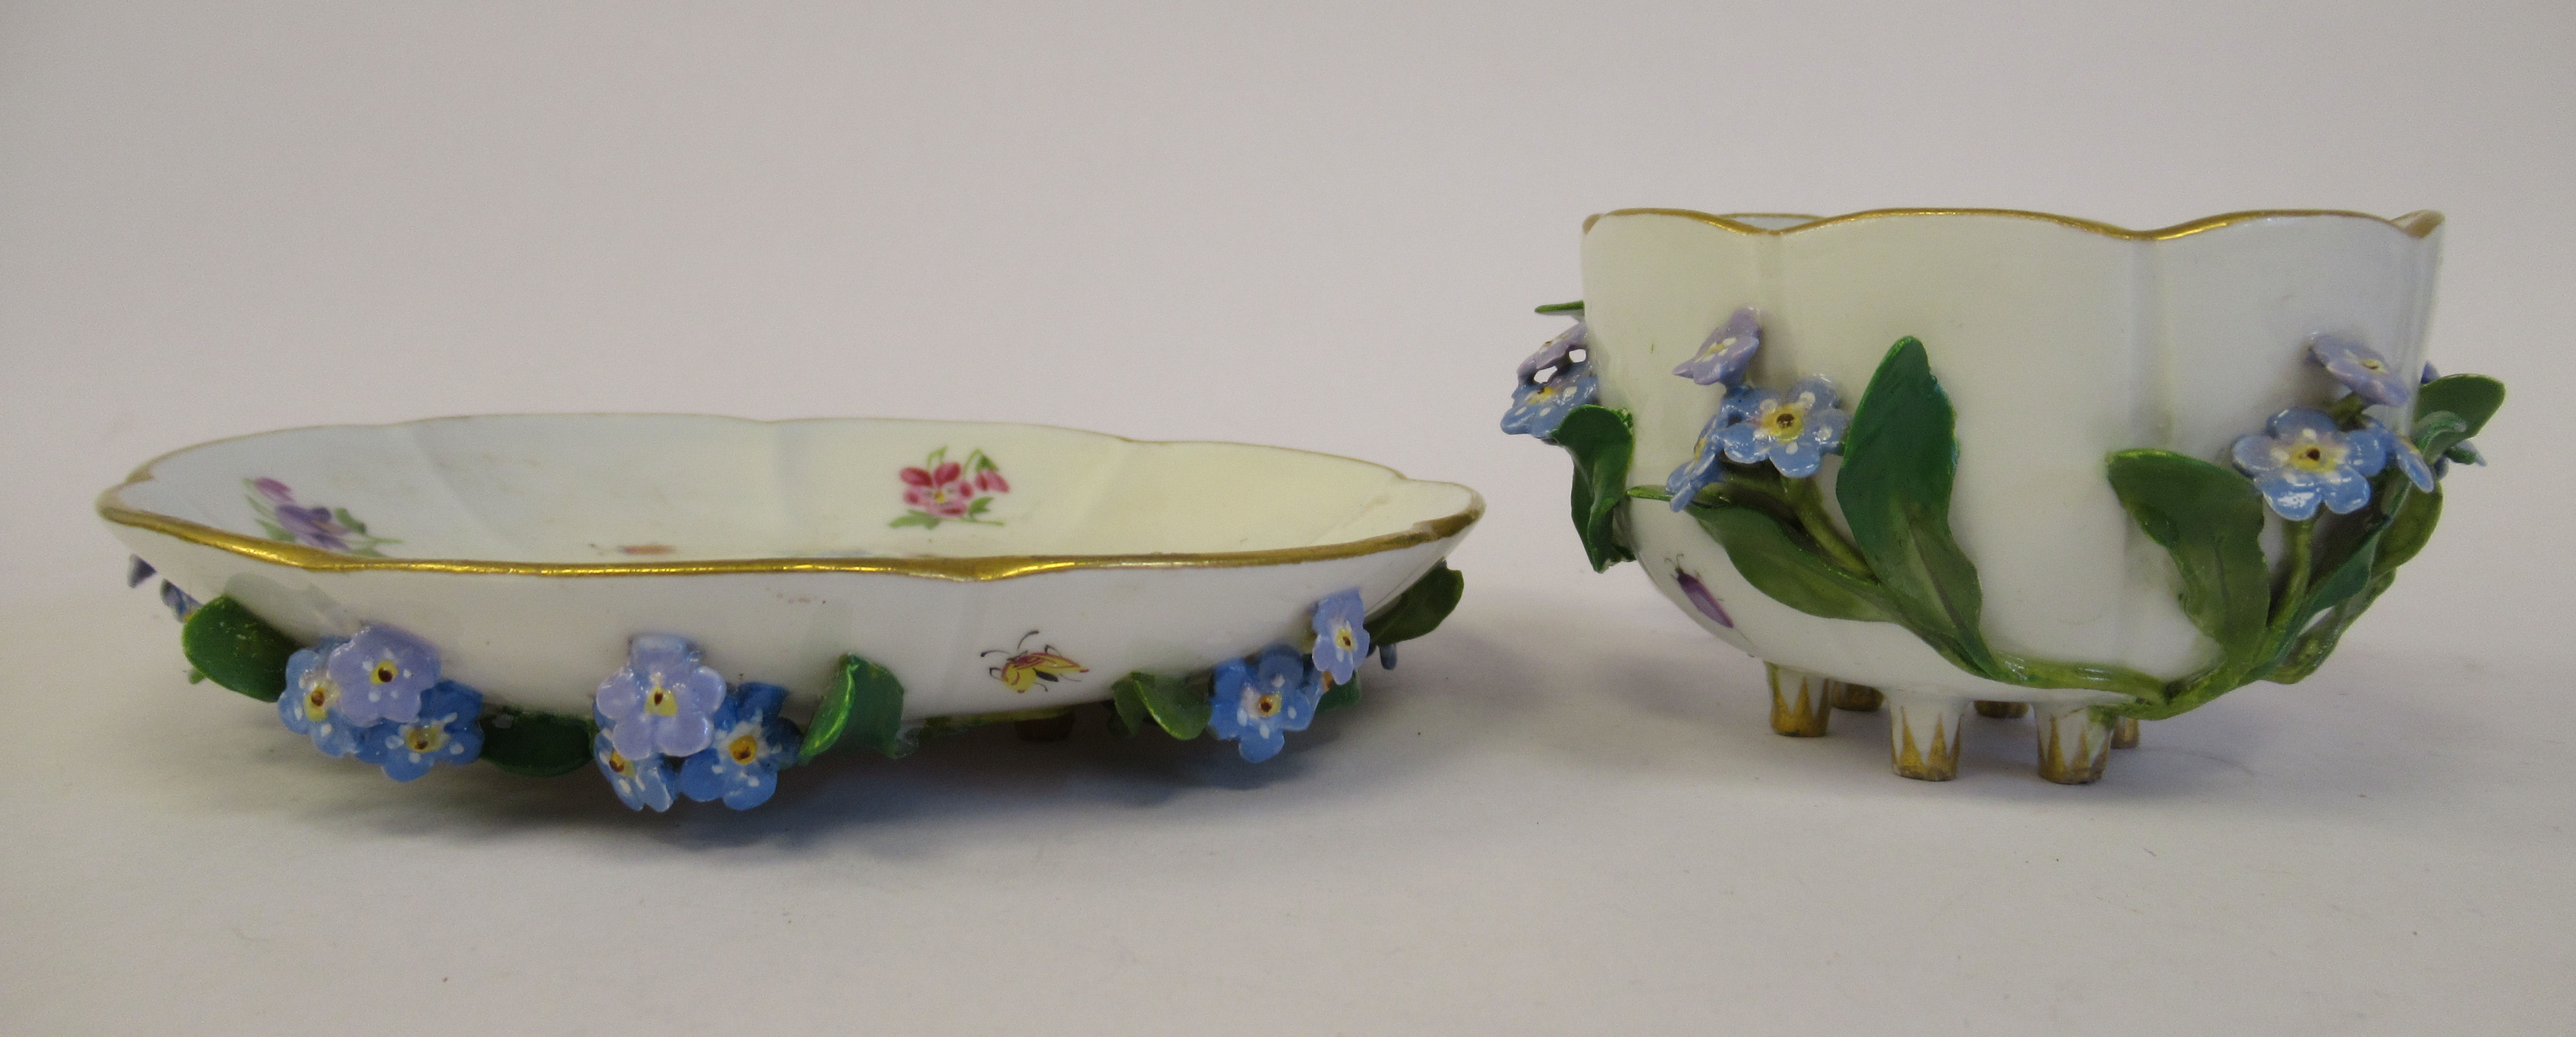 A 19thC Meissen porcelain cup and saucer, having an entwined twig handle, decorated with encrusted - Image 4 of 10